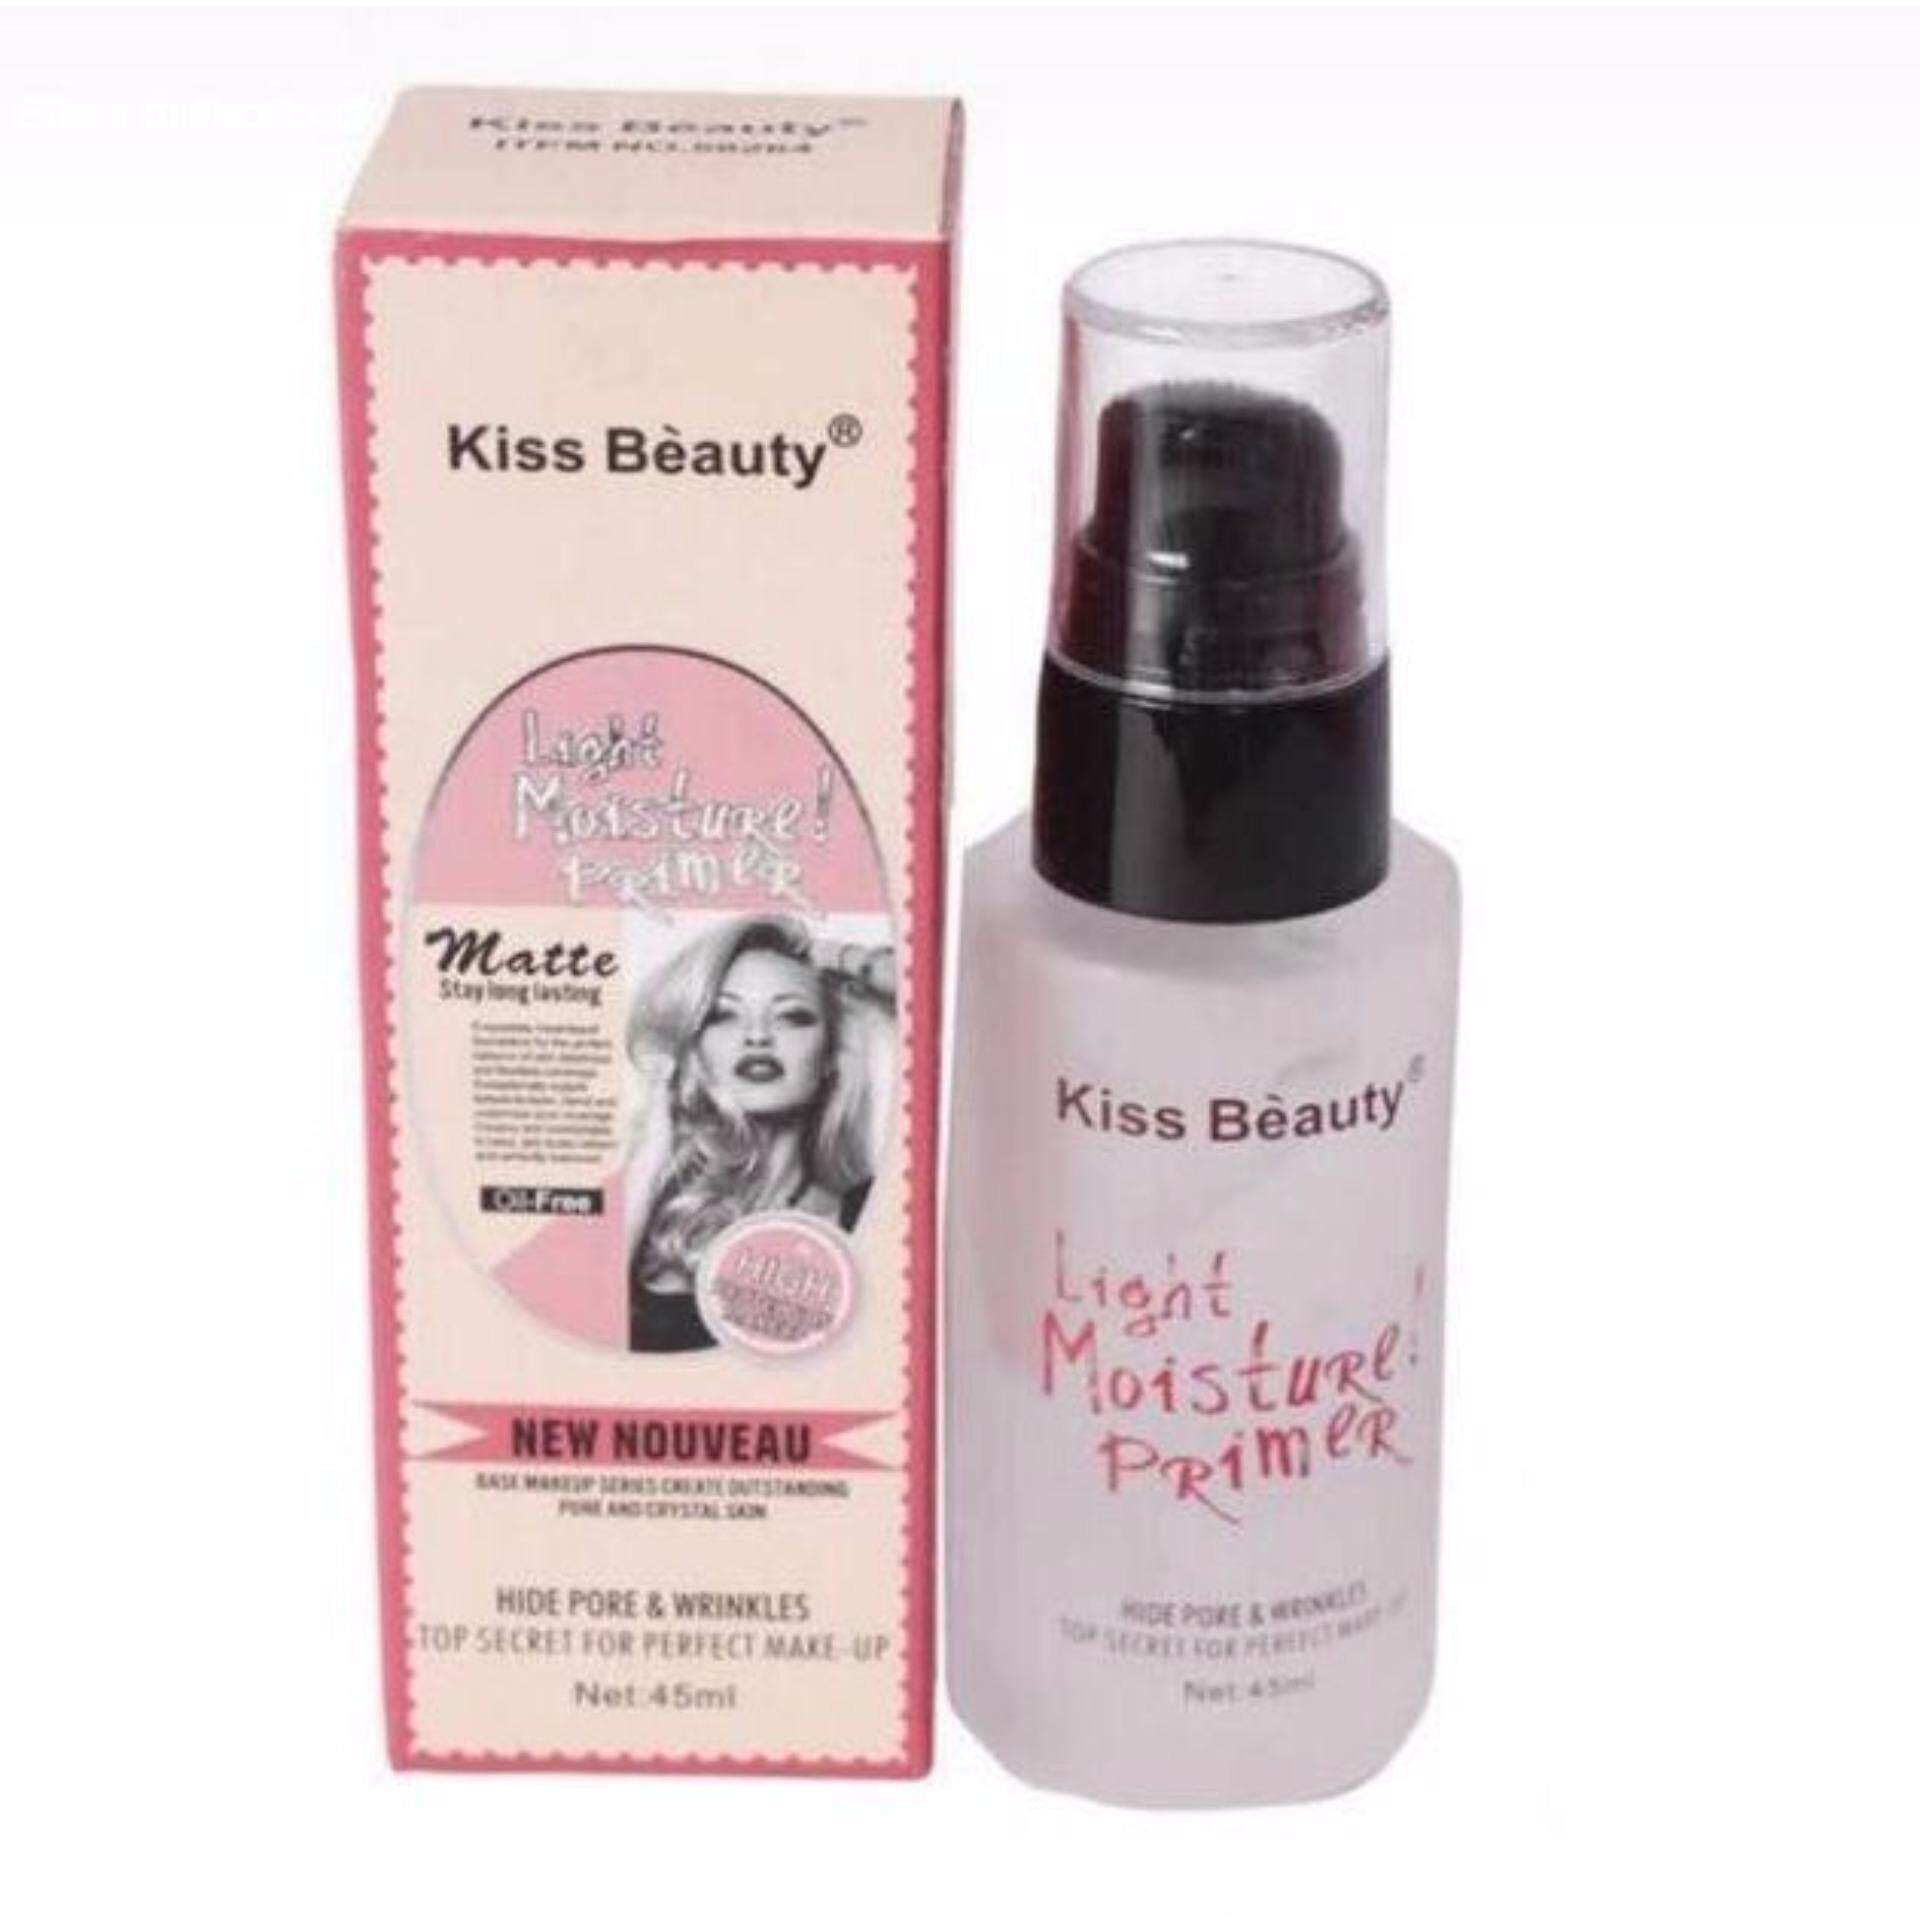 Kiss Beauty Light Moisture Primer 45ml [ Original ]  with Extra Gift